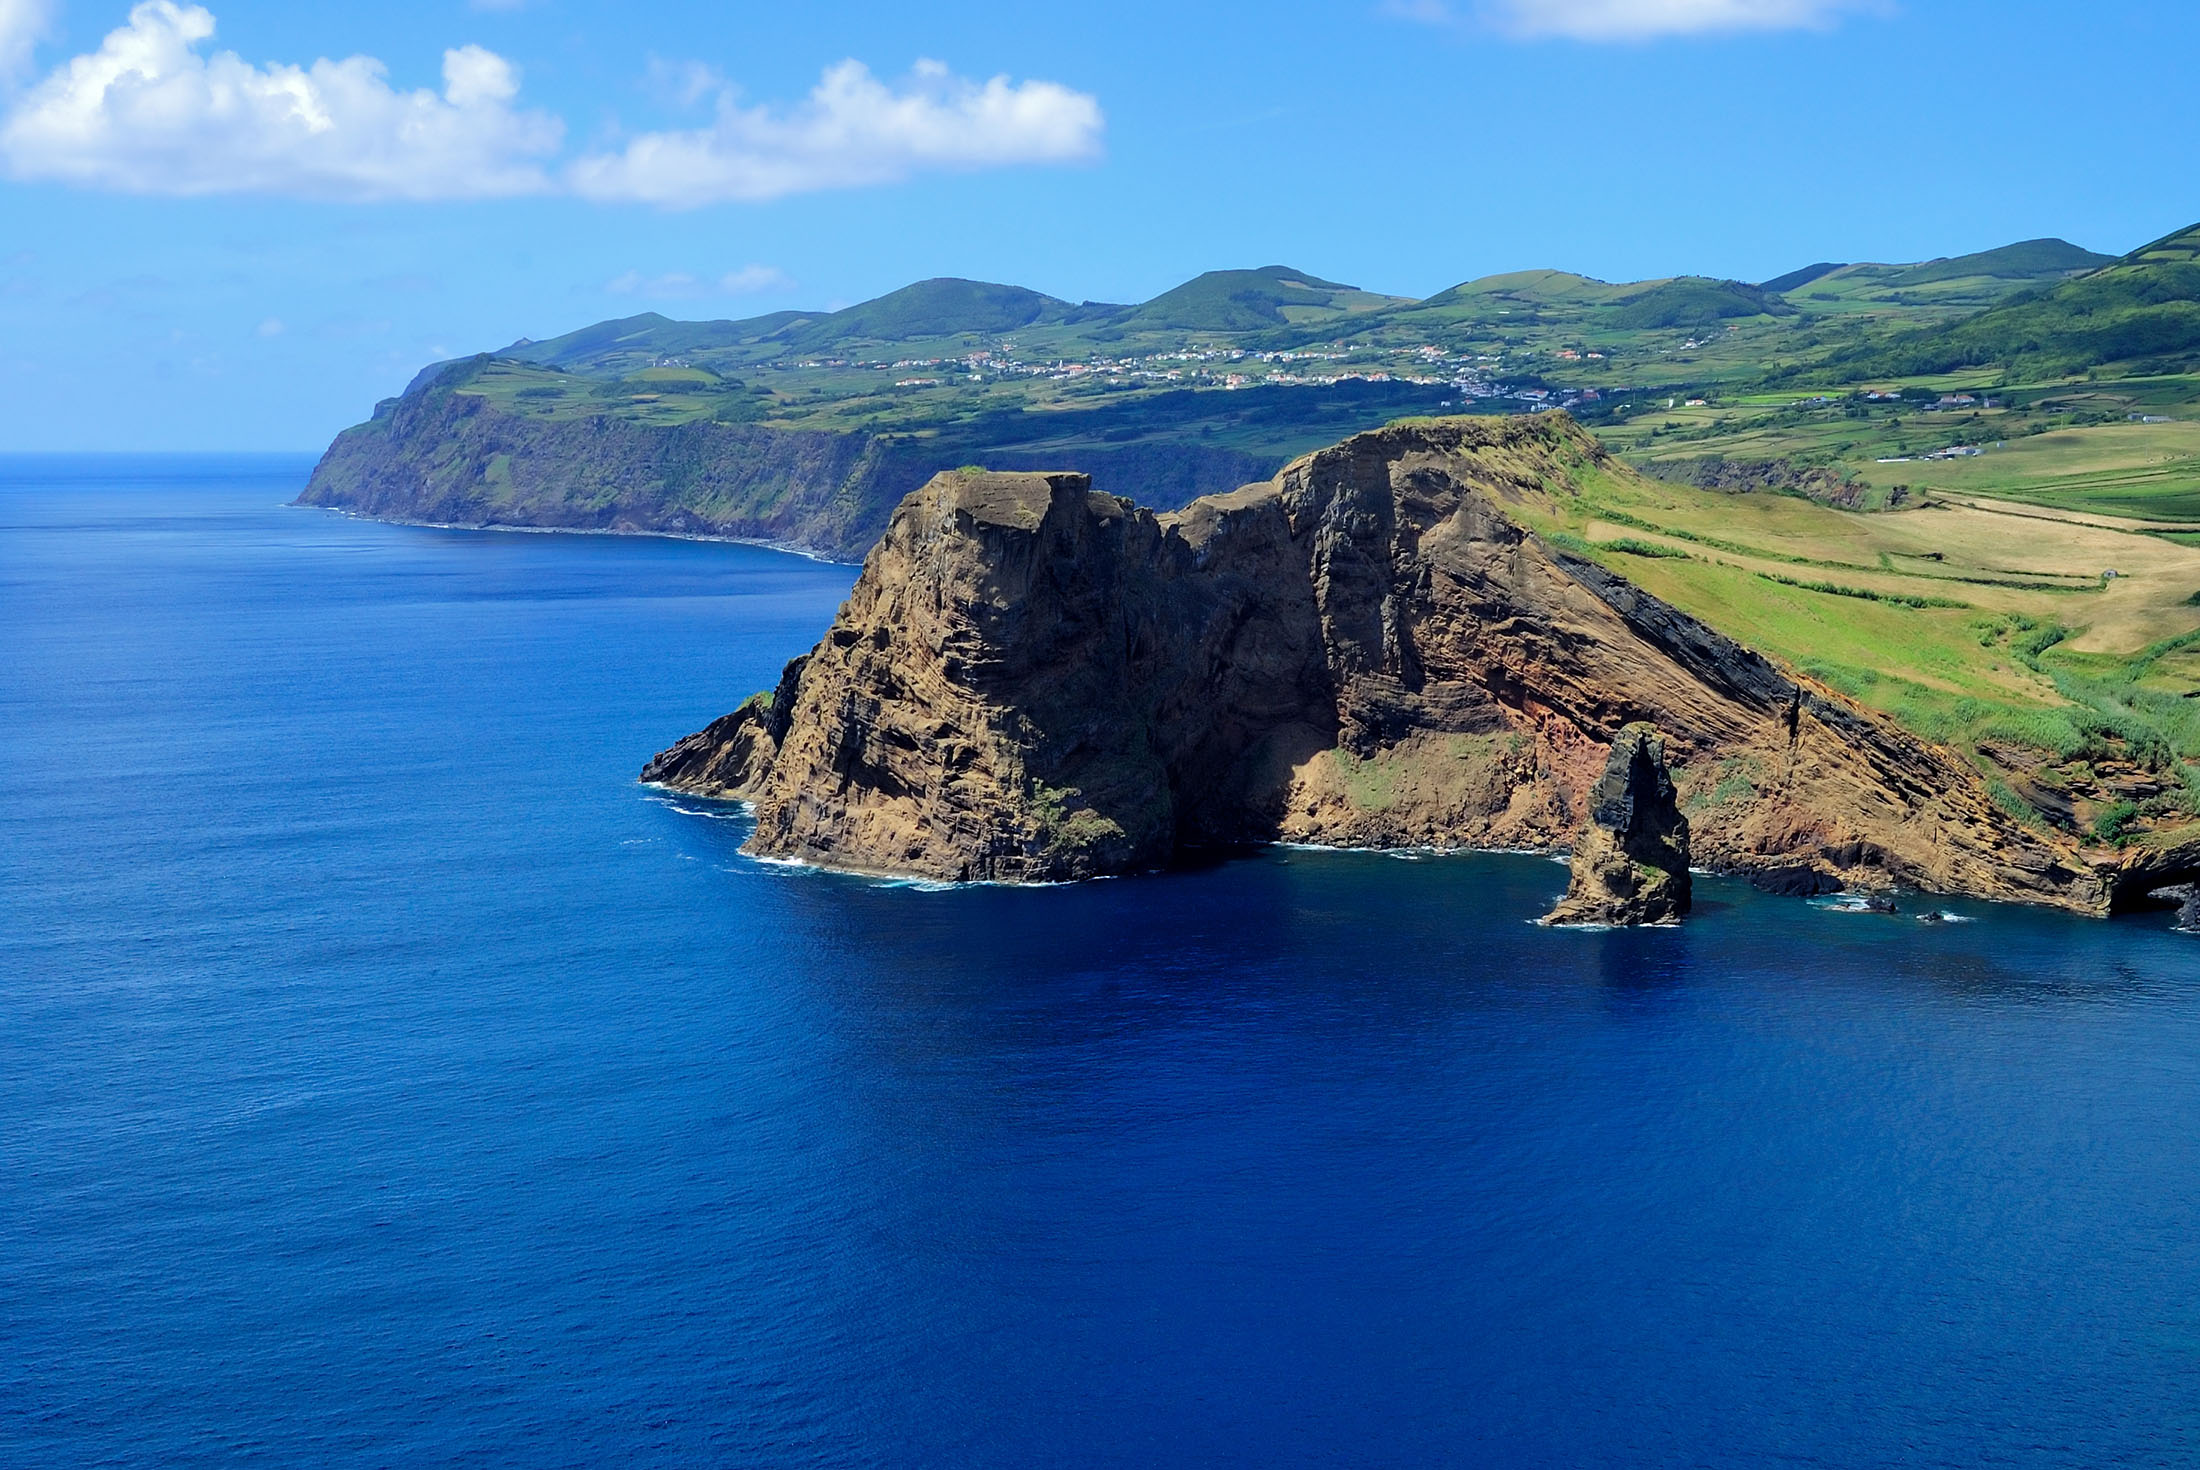 Portugal & the Azores 4